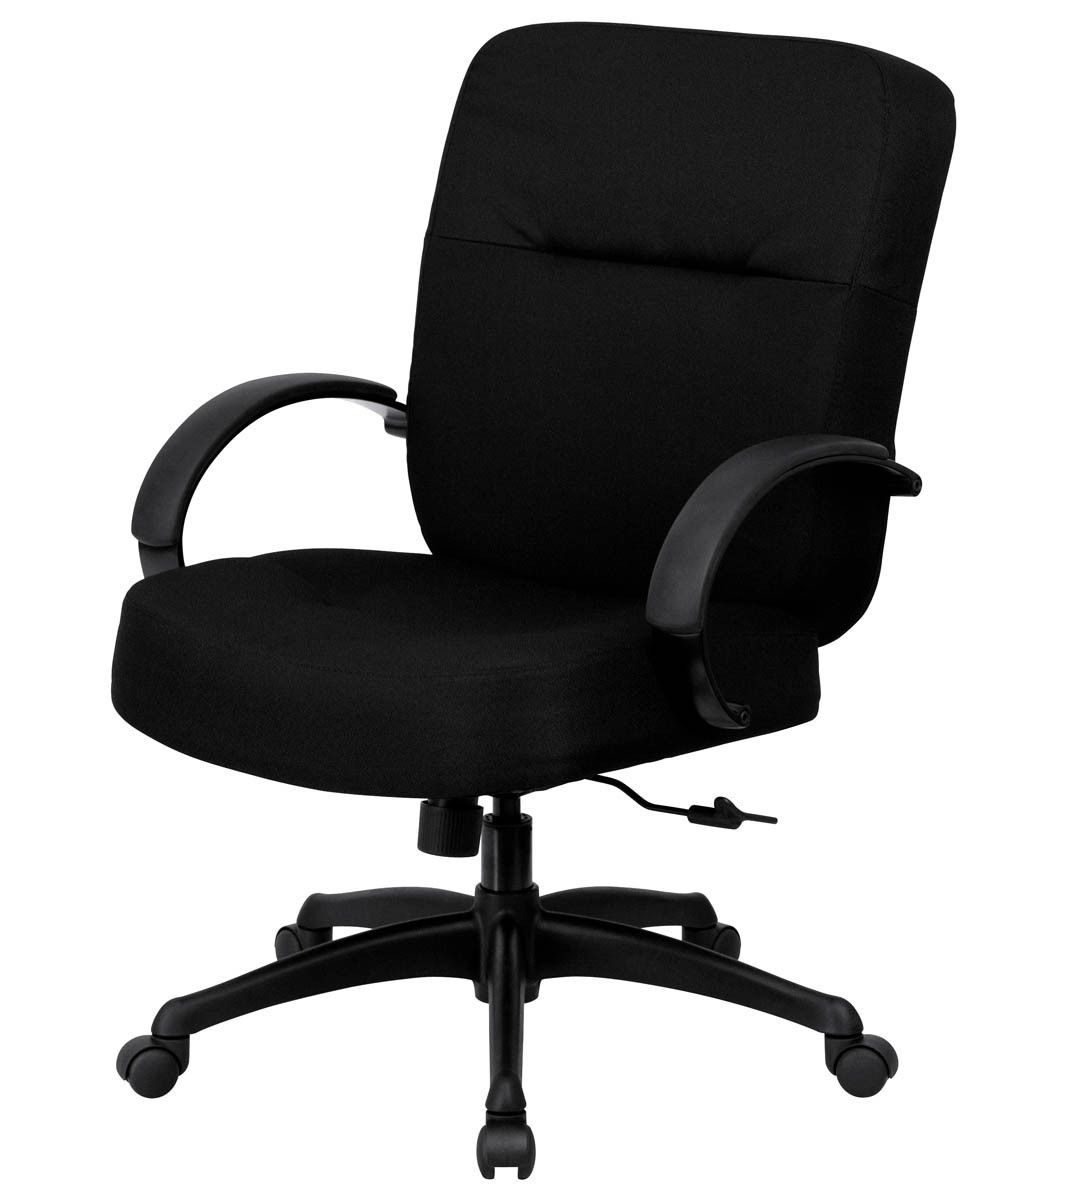 heavy duty office chairs 400 lbs was uploaded on april 25 you can